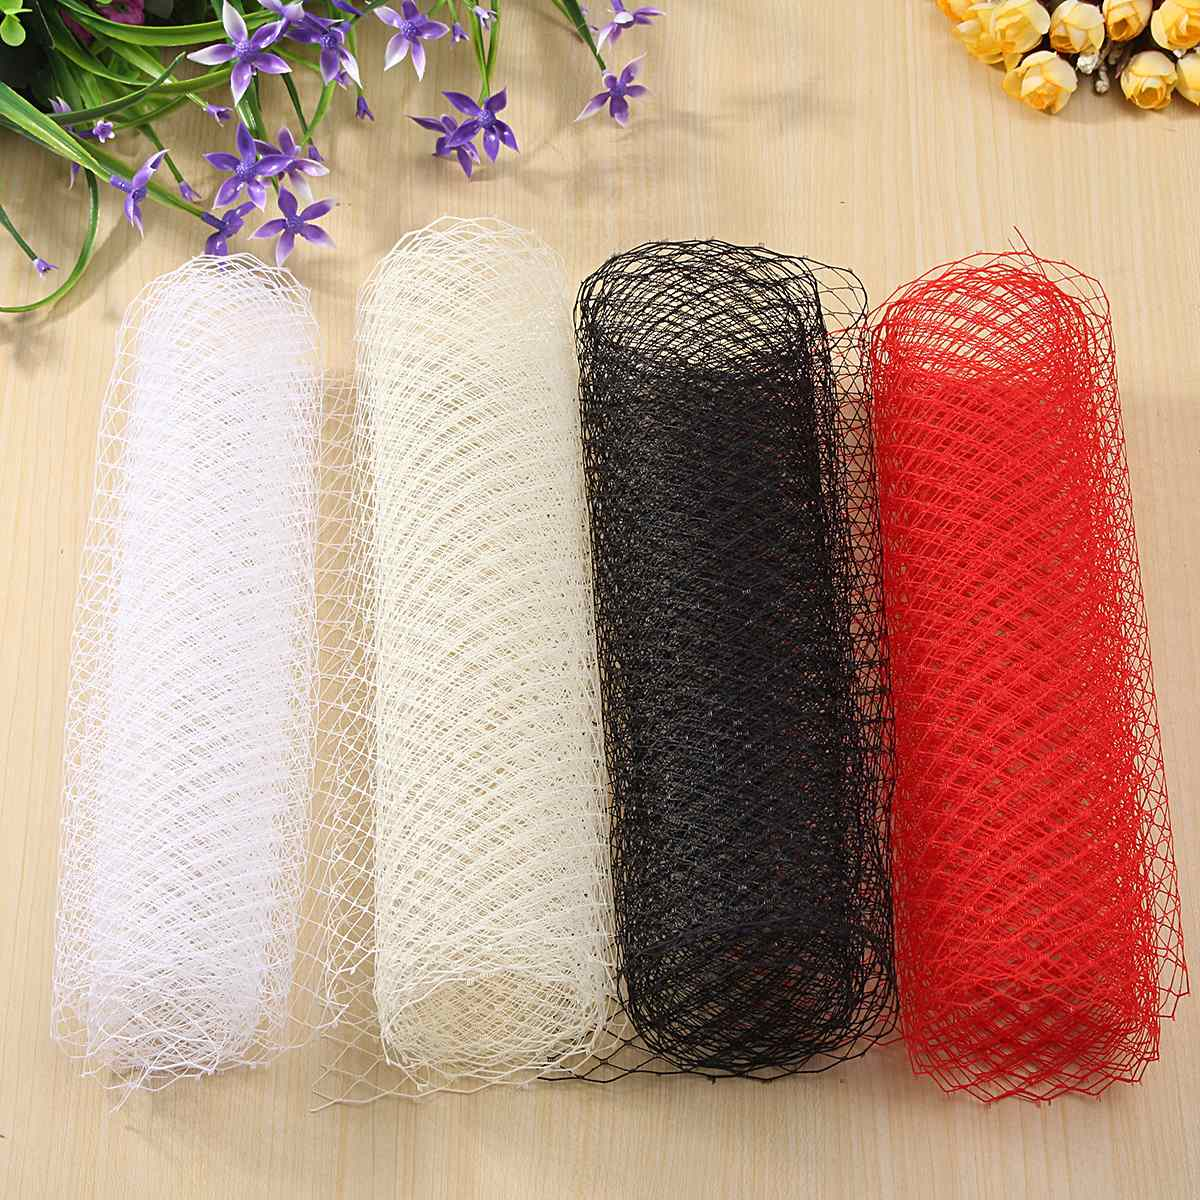 Yarn Fabric For Veil Mesh Wedding Cloth Hat Mesh DIY Sewing Beige White Black Red Millinery Clothes Craft DIY Material 200x26cm(China (Mainland))